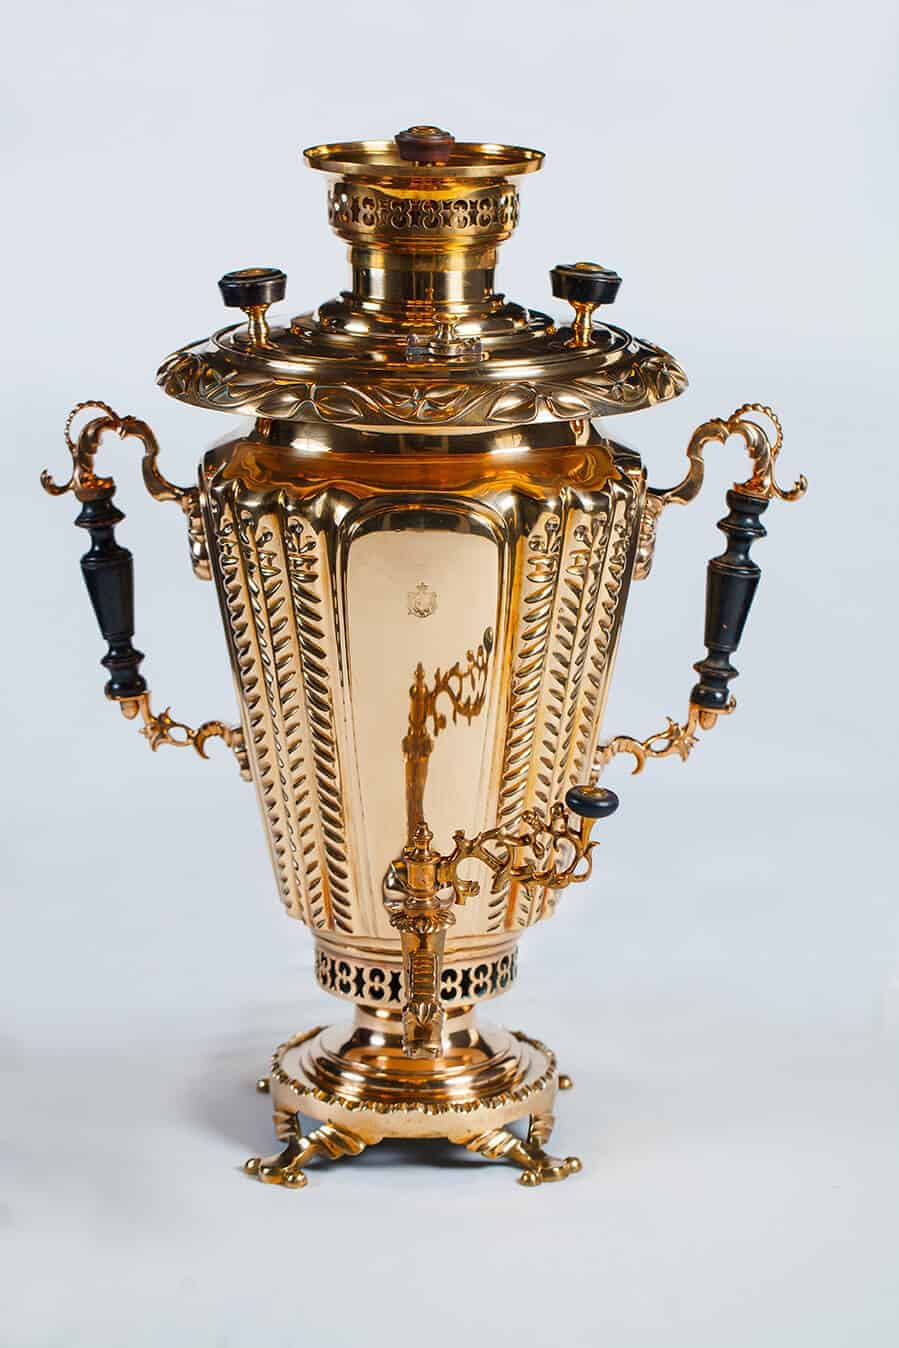 Conical shaped samovar with decorated embossed ring and double faucet. Brothers Alexei and Ivan Batashev's Works, early XXc. Private collection of M.Borshchev.